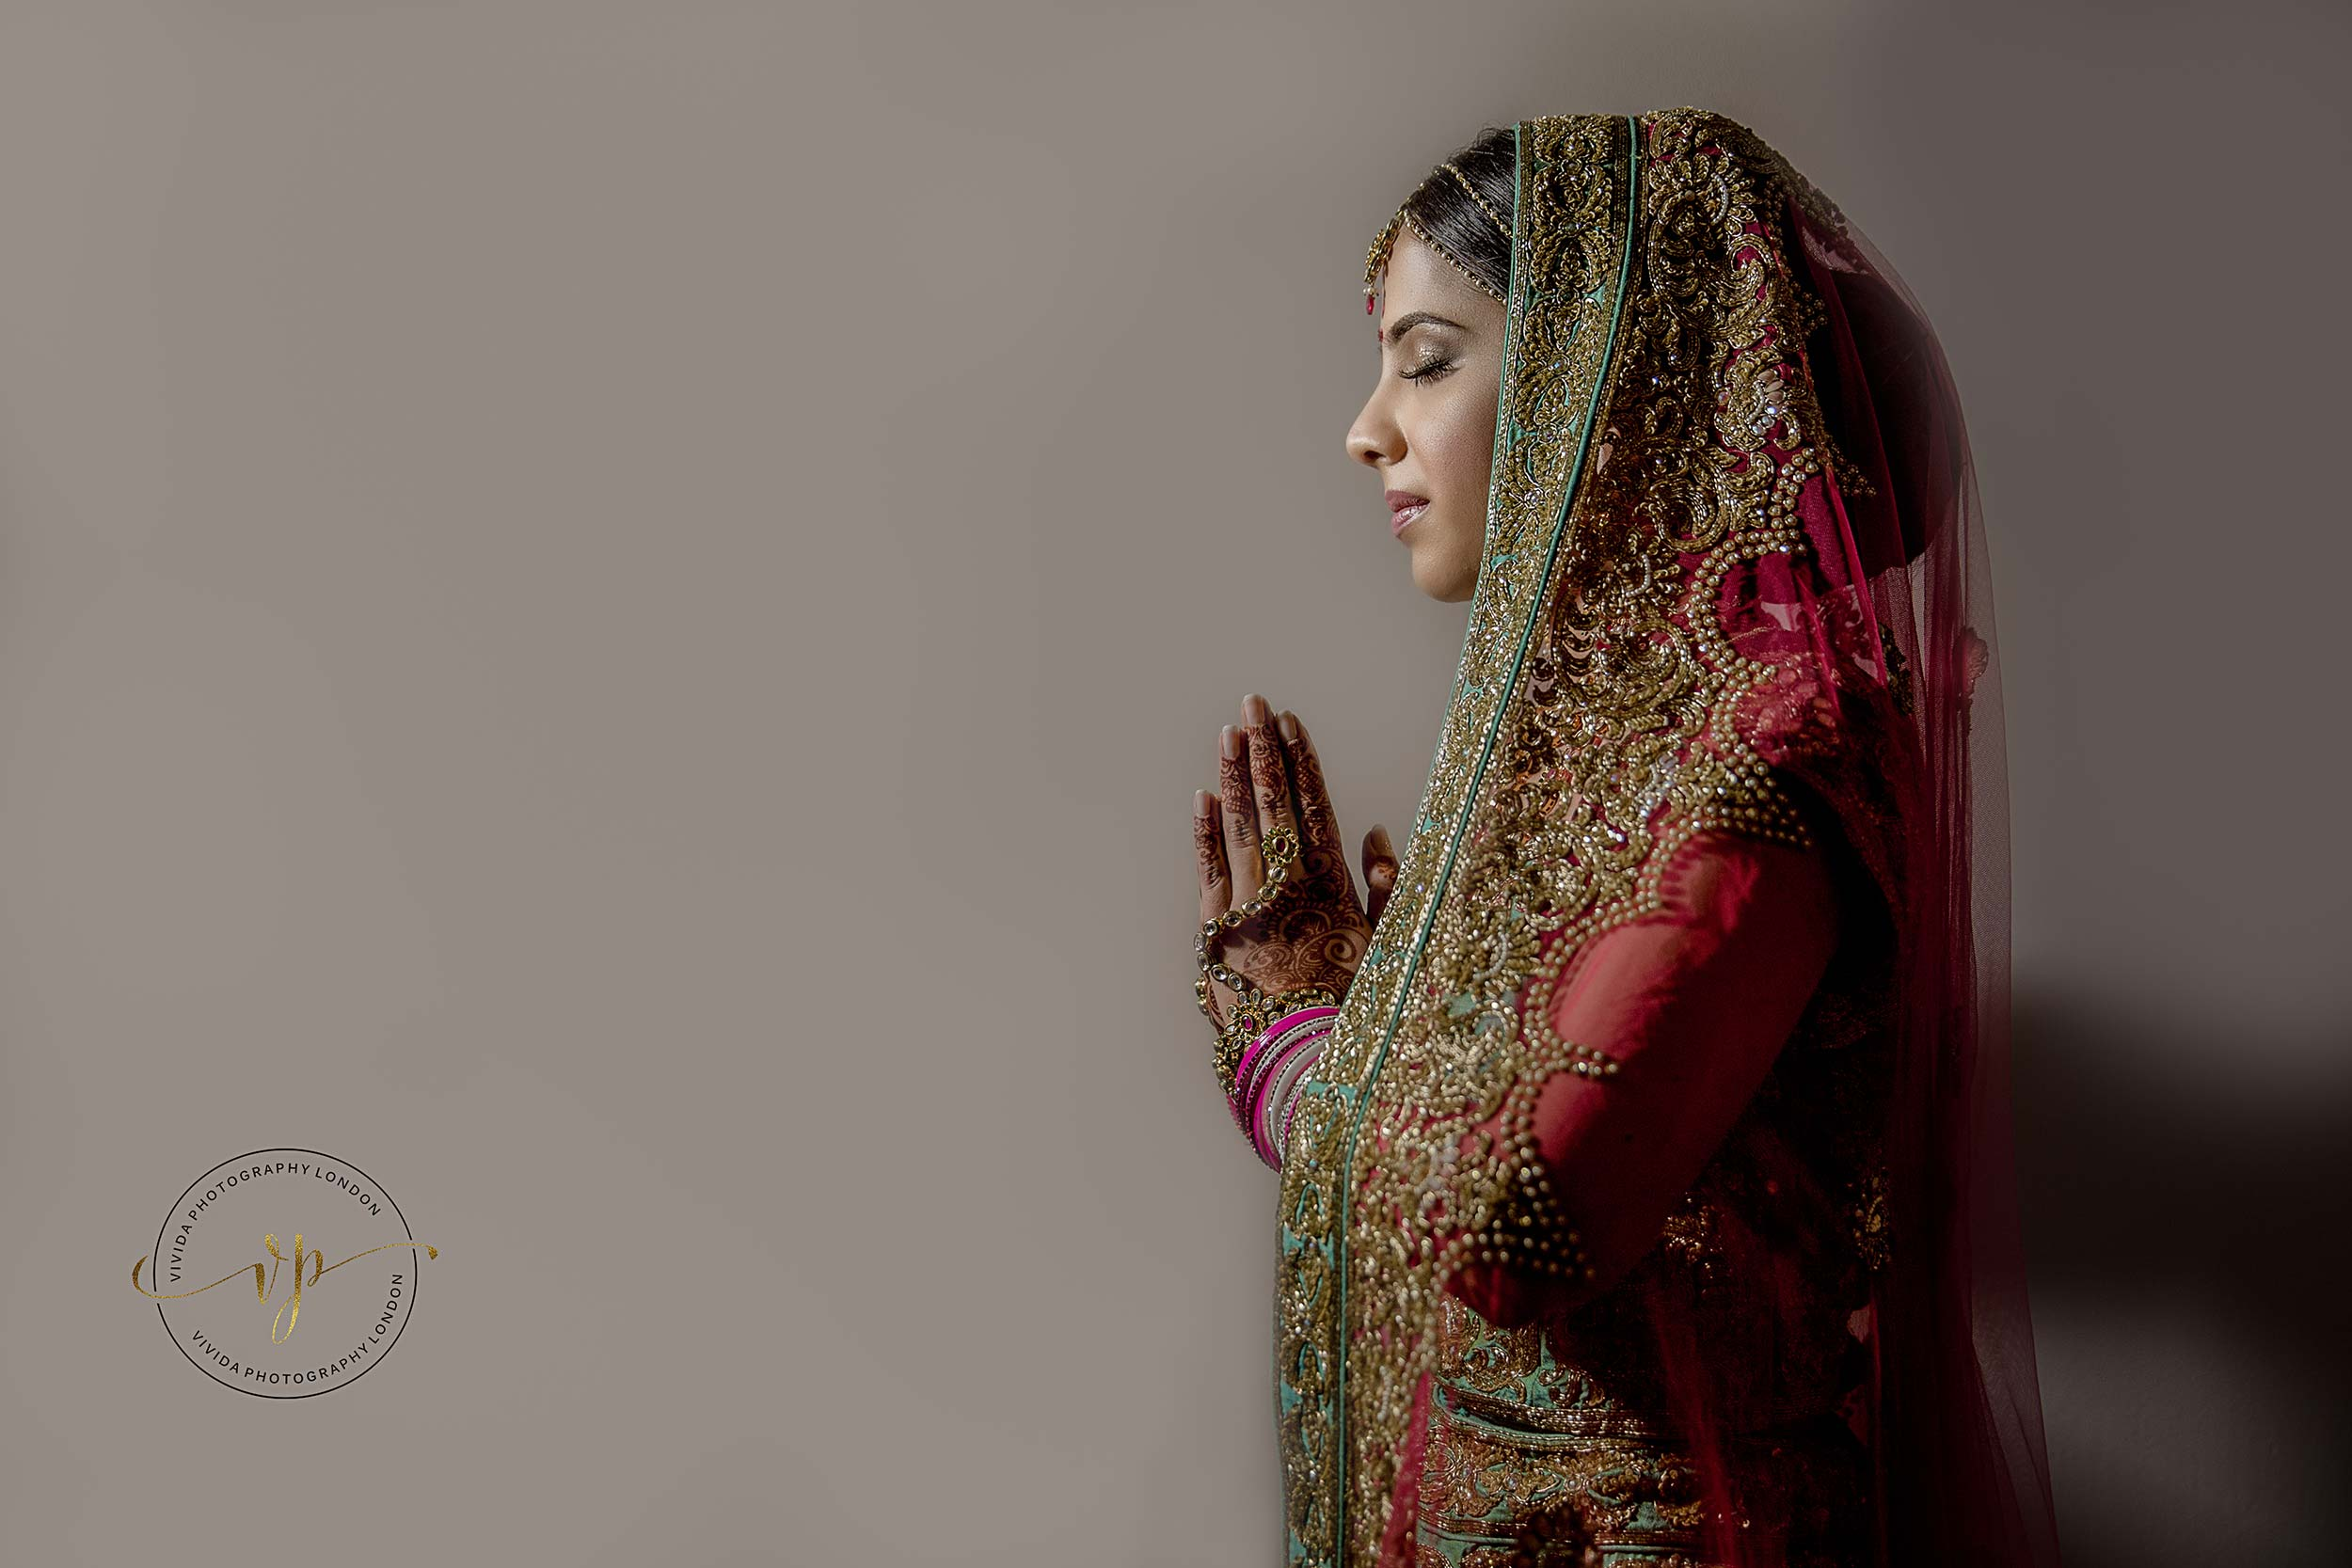 hindu+wedding+photography+london_19.jpg